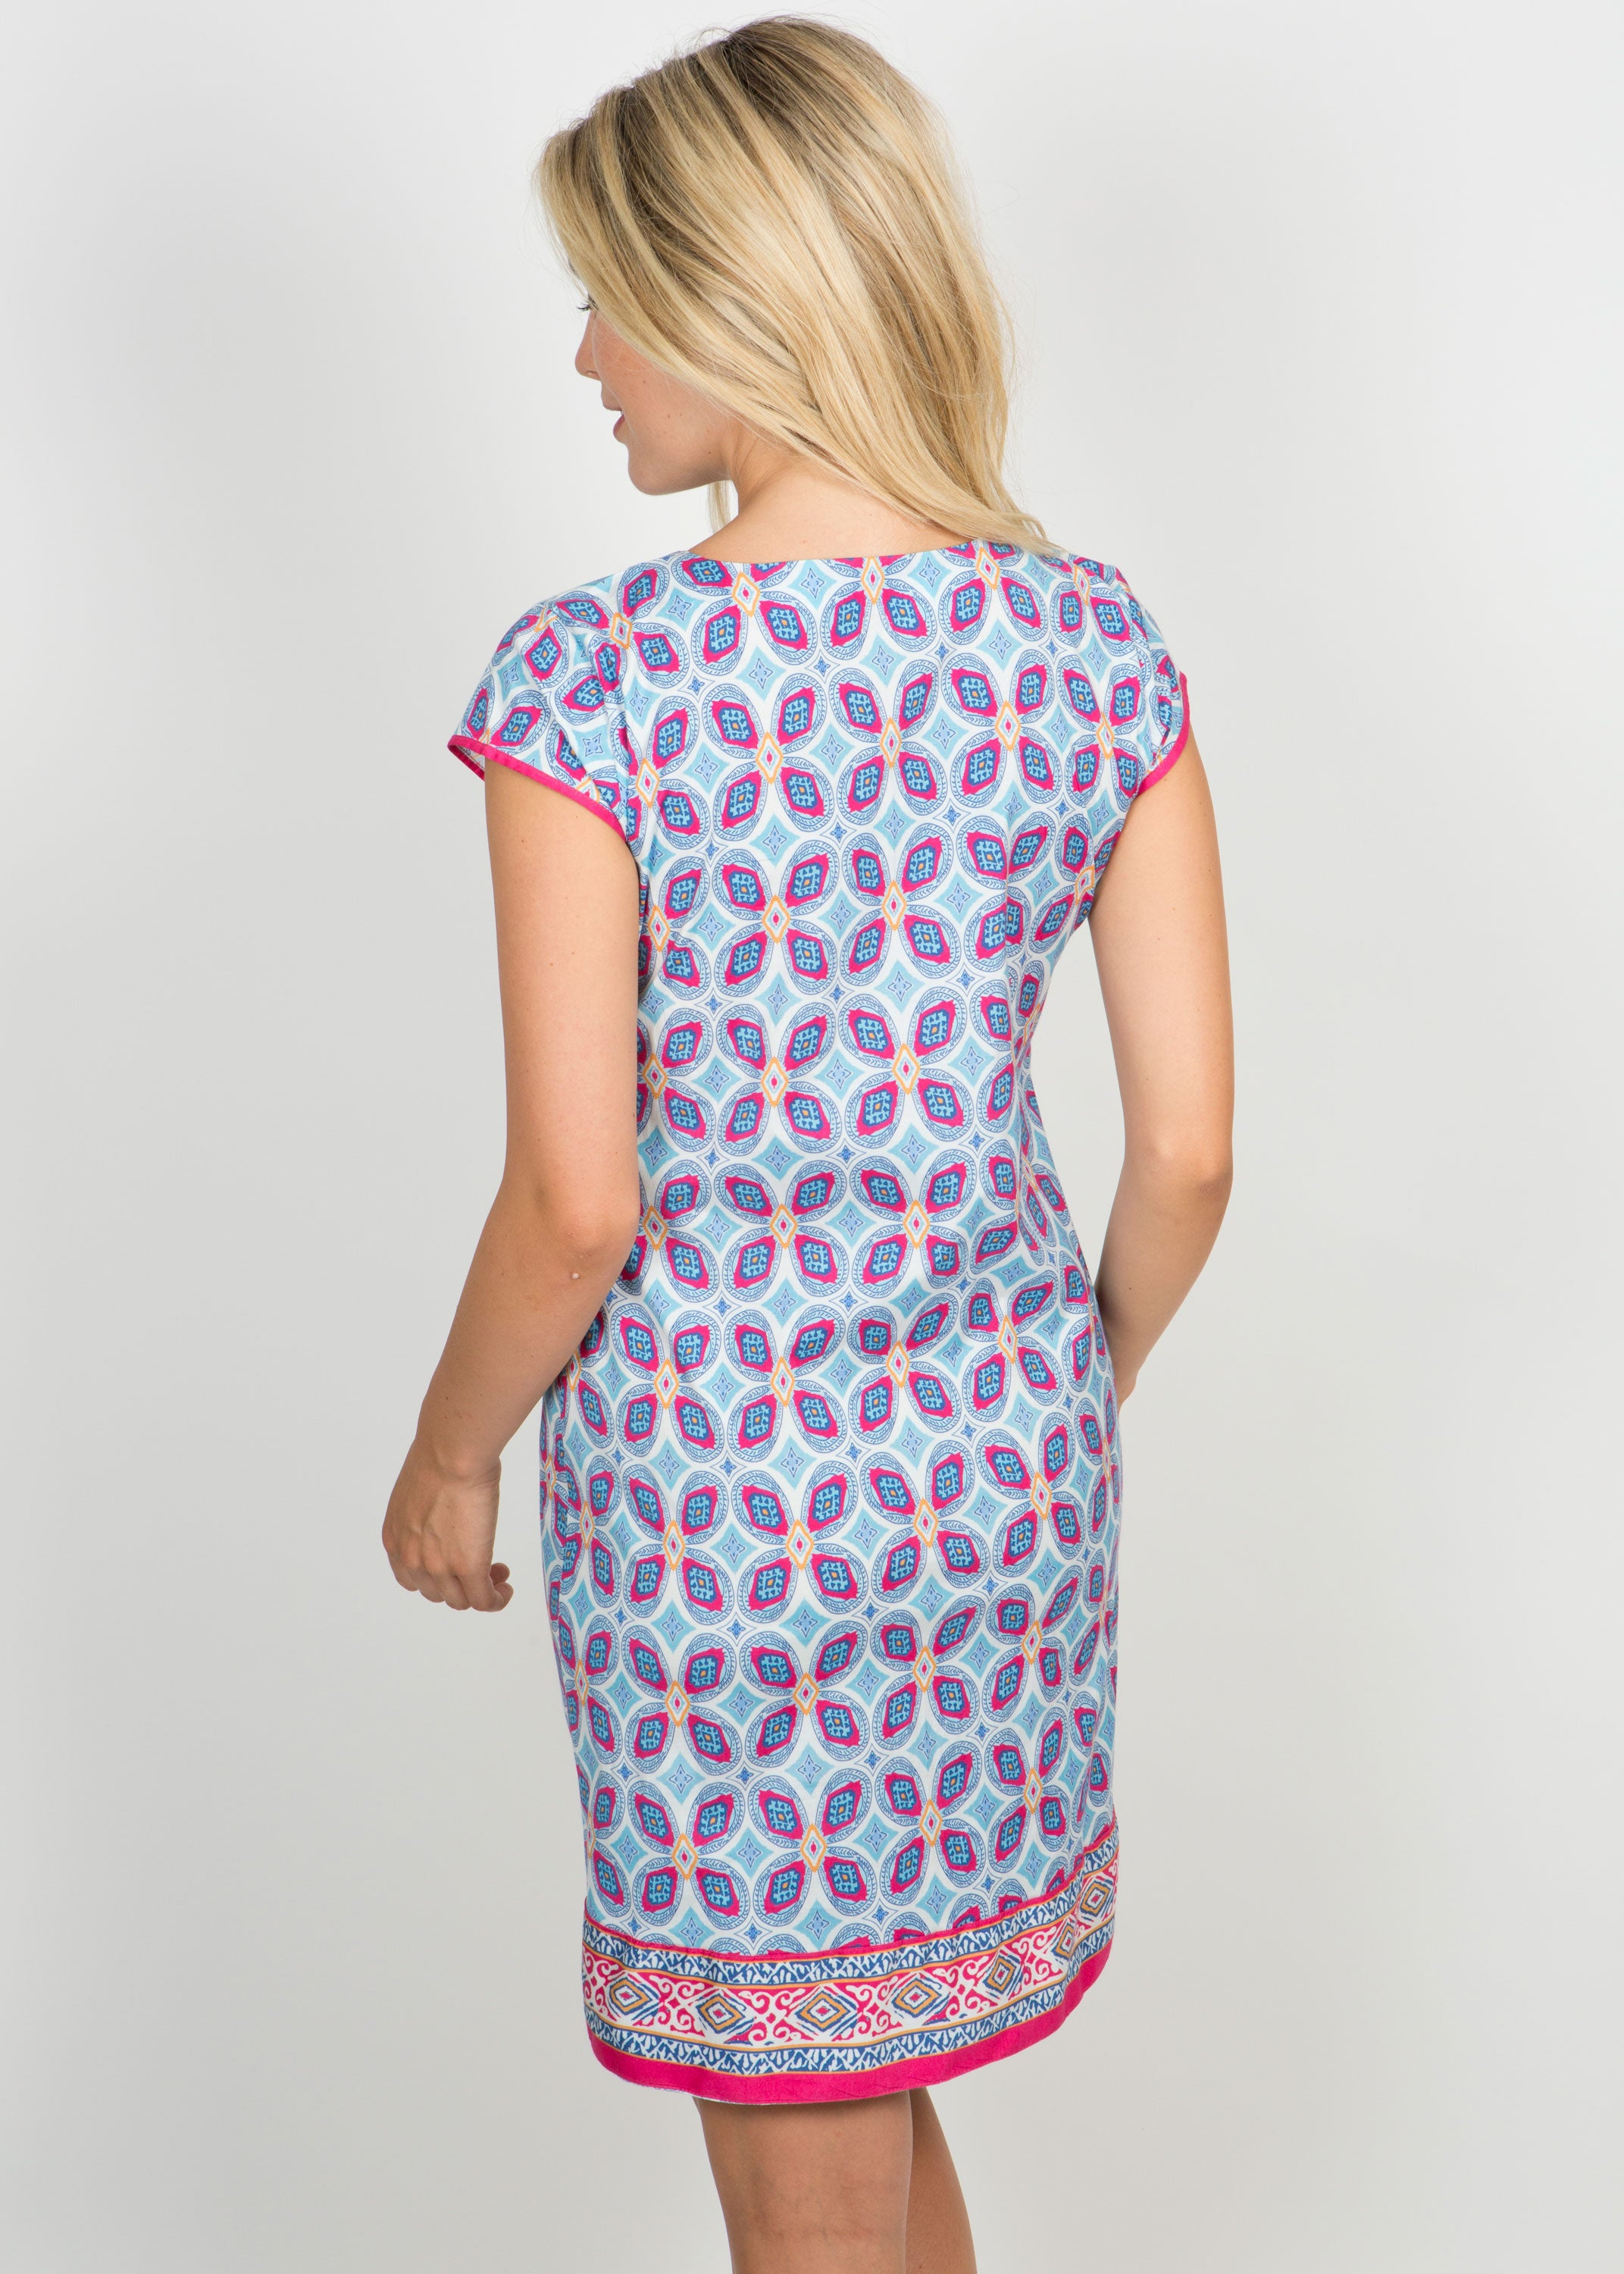 Ryan Cap Sleeve Dress